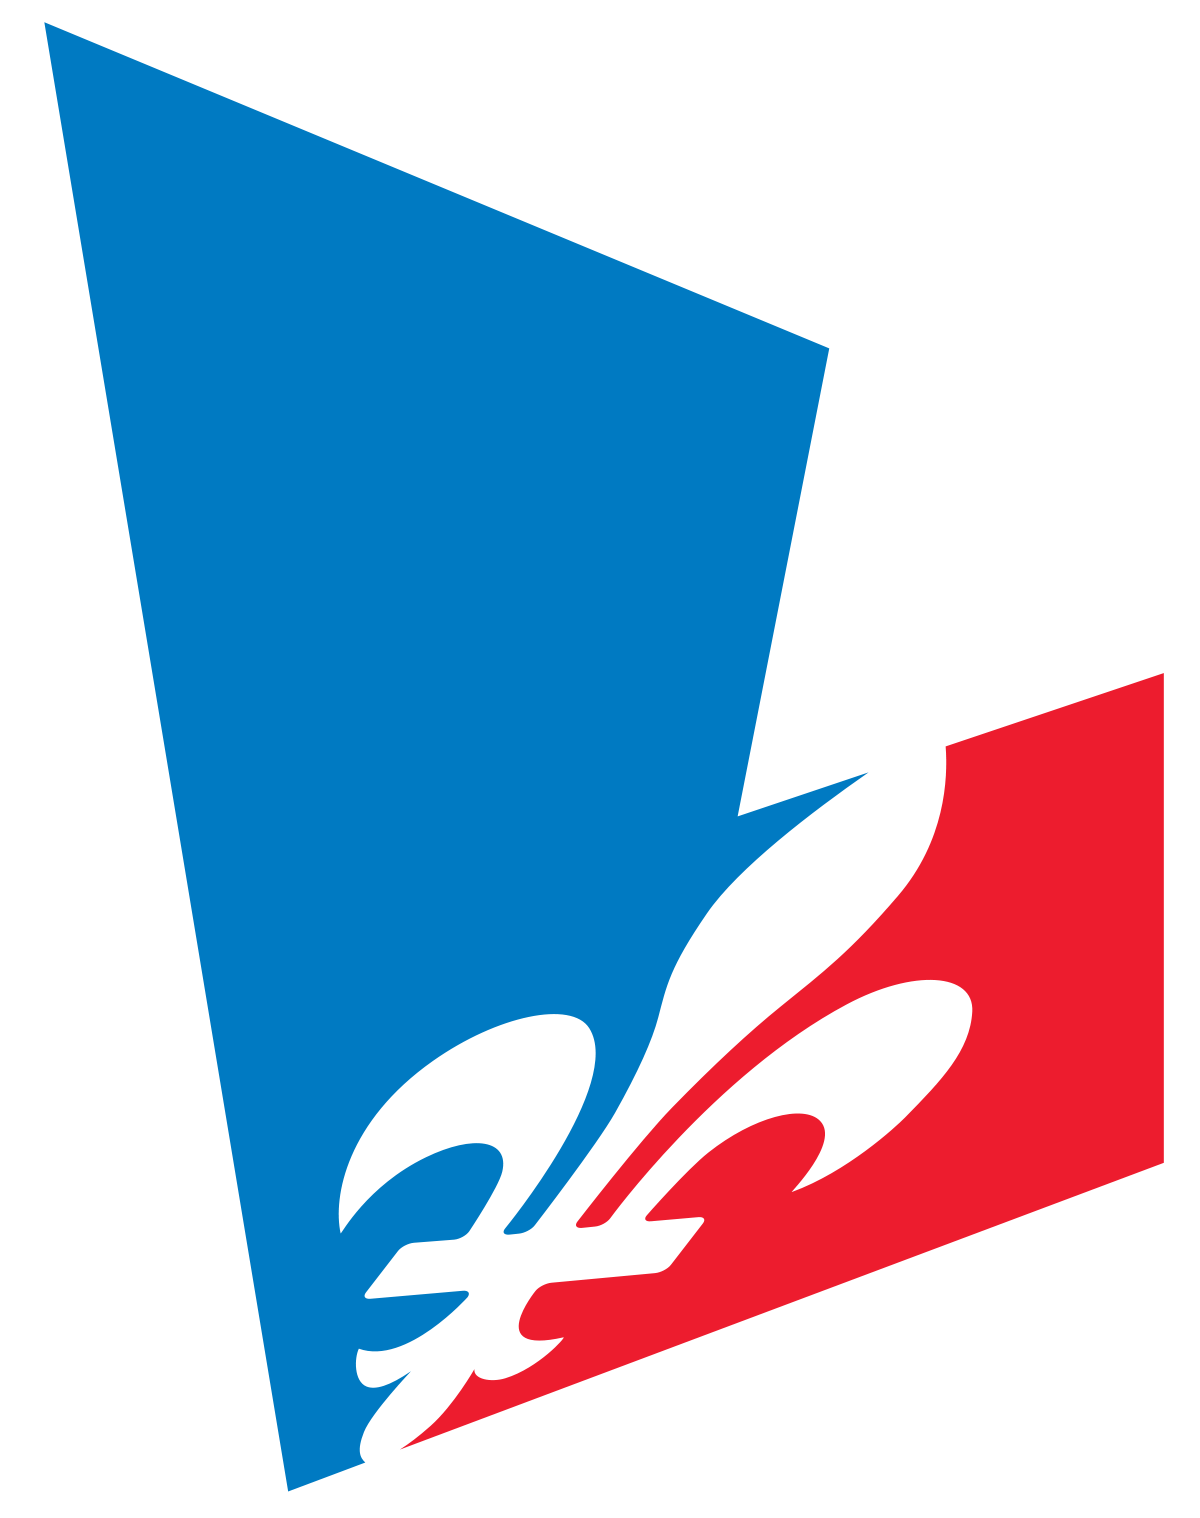 Democracy clipart liberal. Quebec party wikipedia